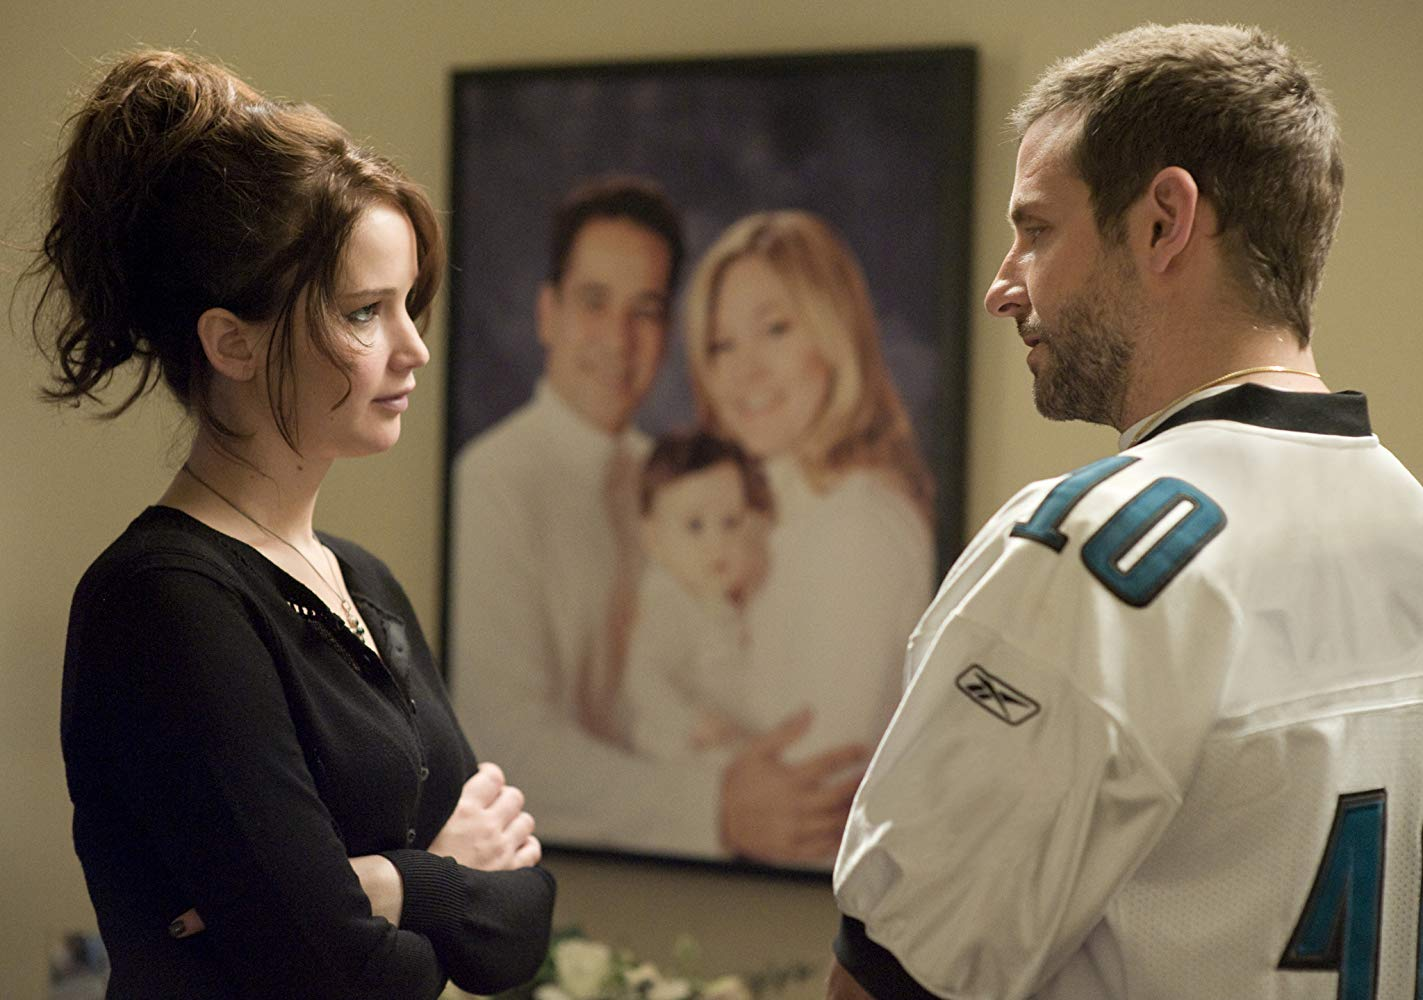 Jennifer Lawrence and Bradley Cooper in The Silver Linings Playbook